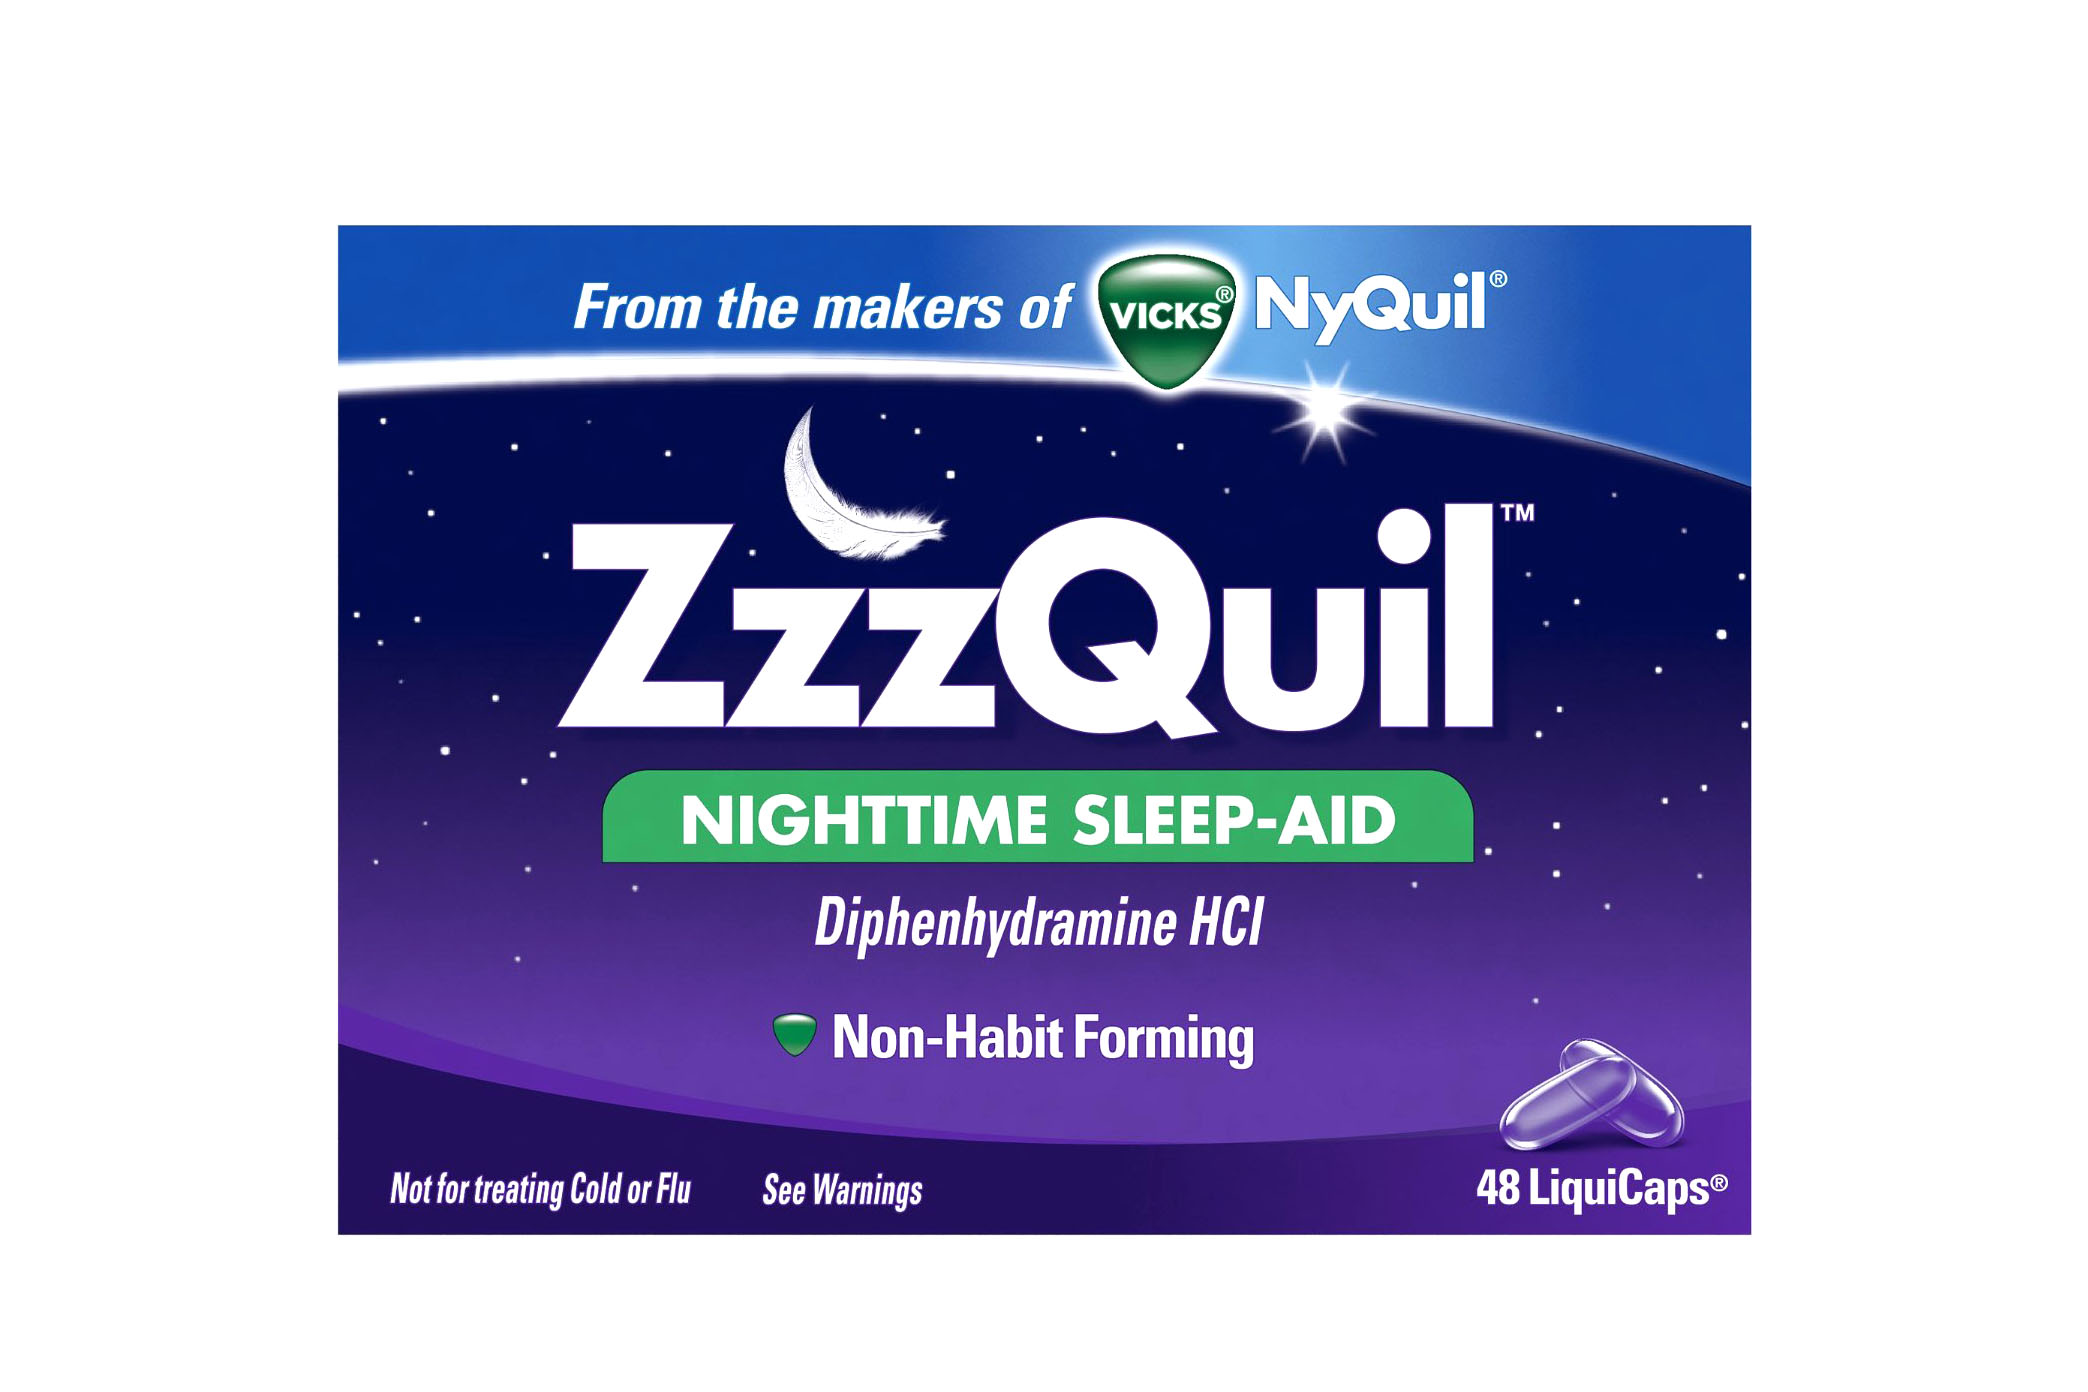 ZzzQuil - 4 stars - $12 (Prime)